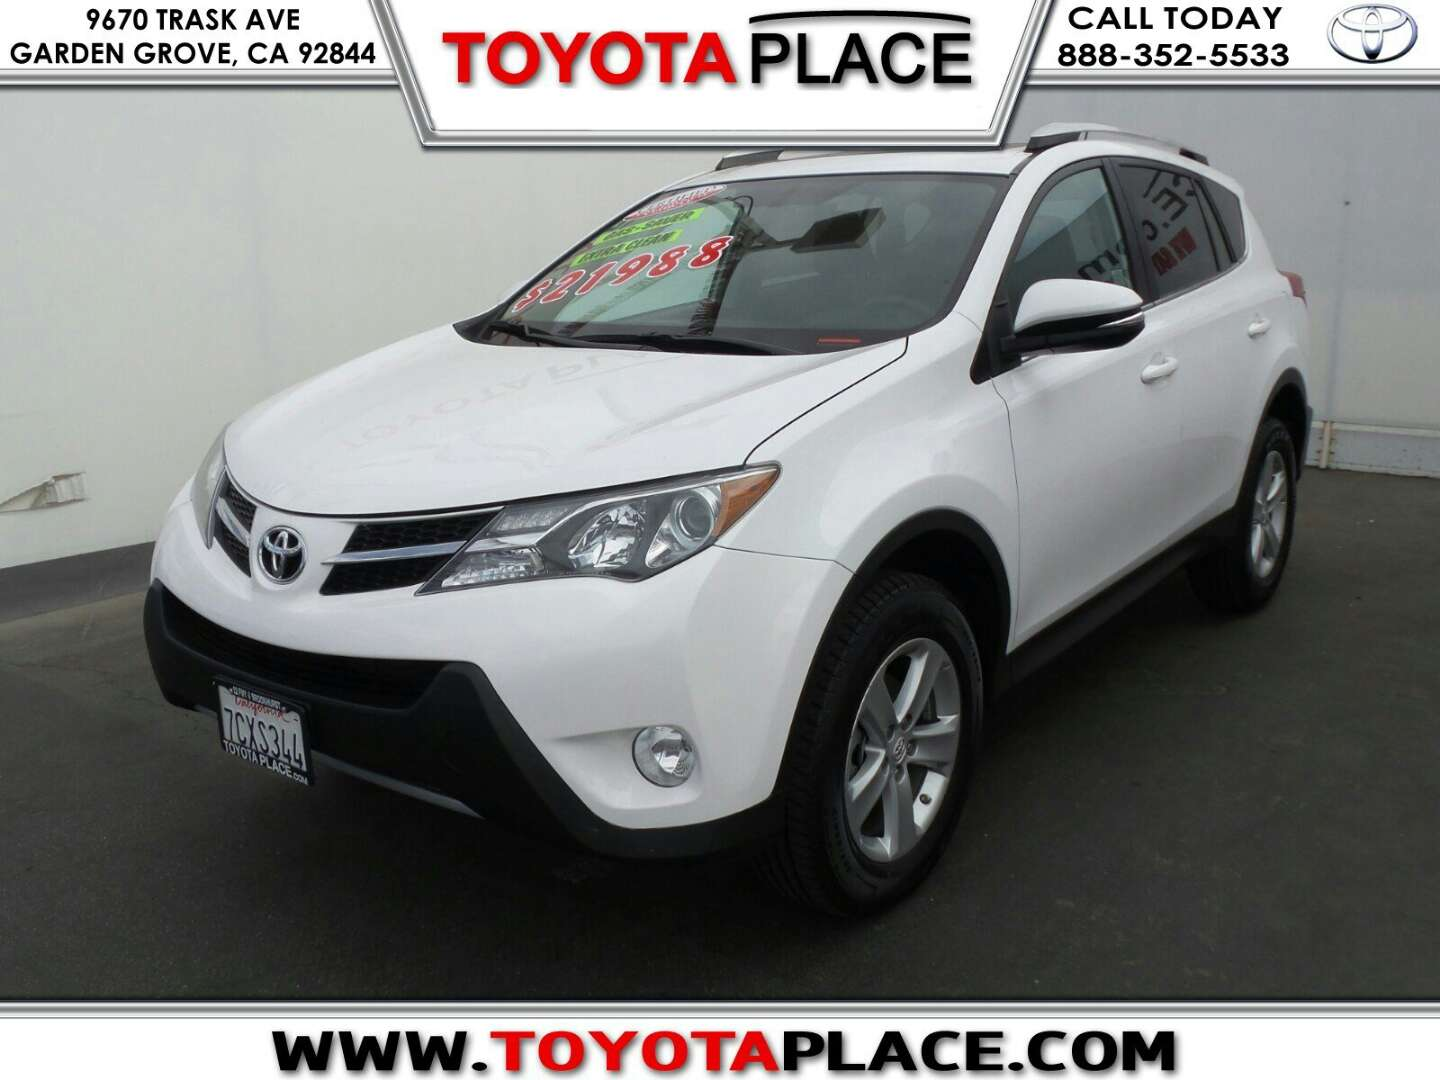 2013 toyota rav4 xle for sale in santa ana ca 5miles buy and sell. Black Bedroom Furniture Sets. Home Design Ideas